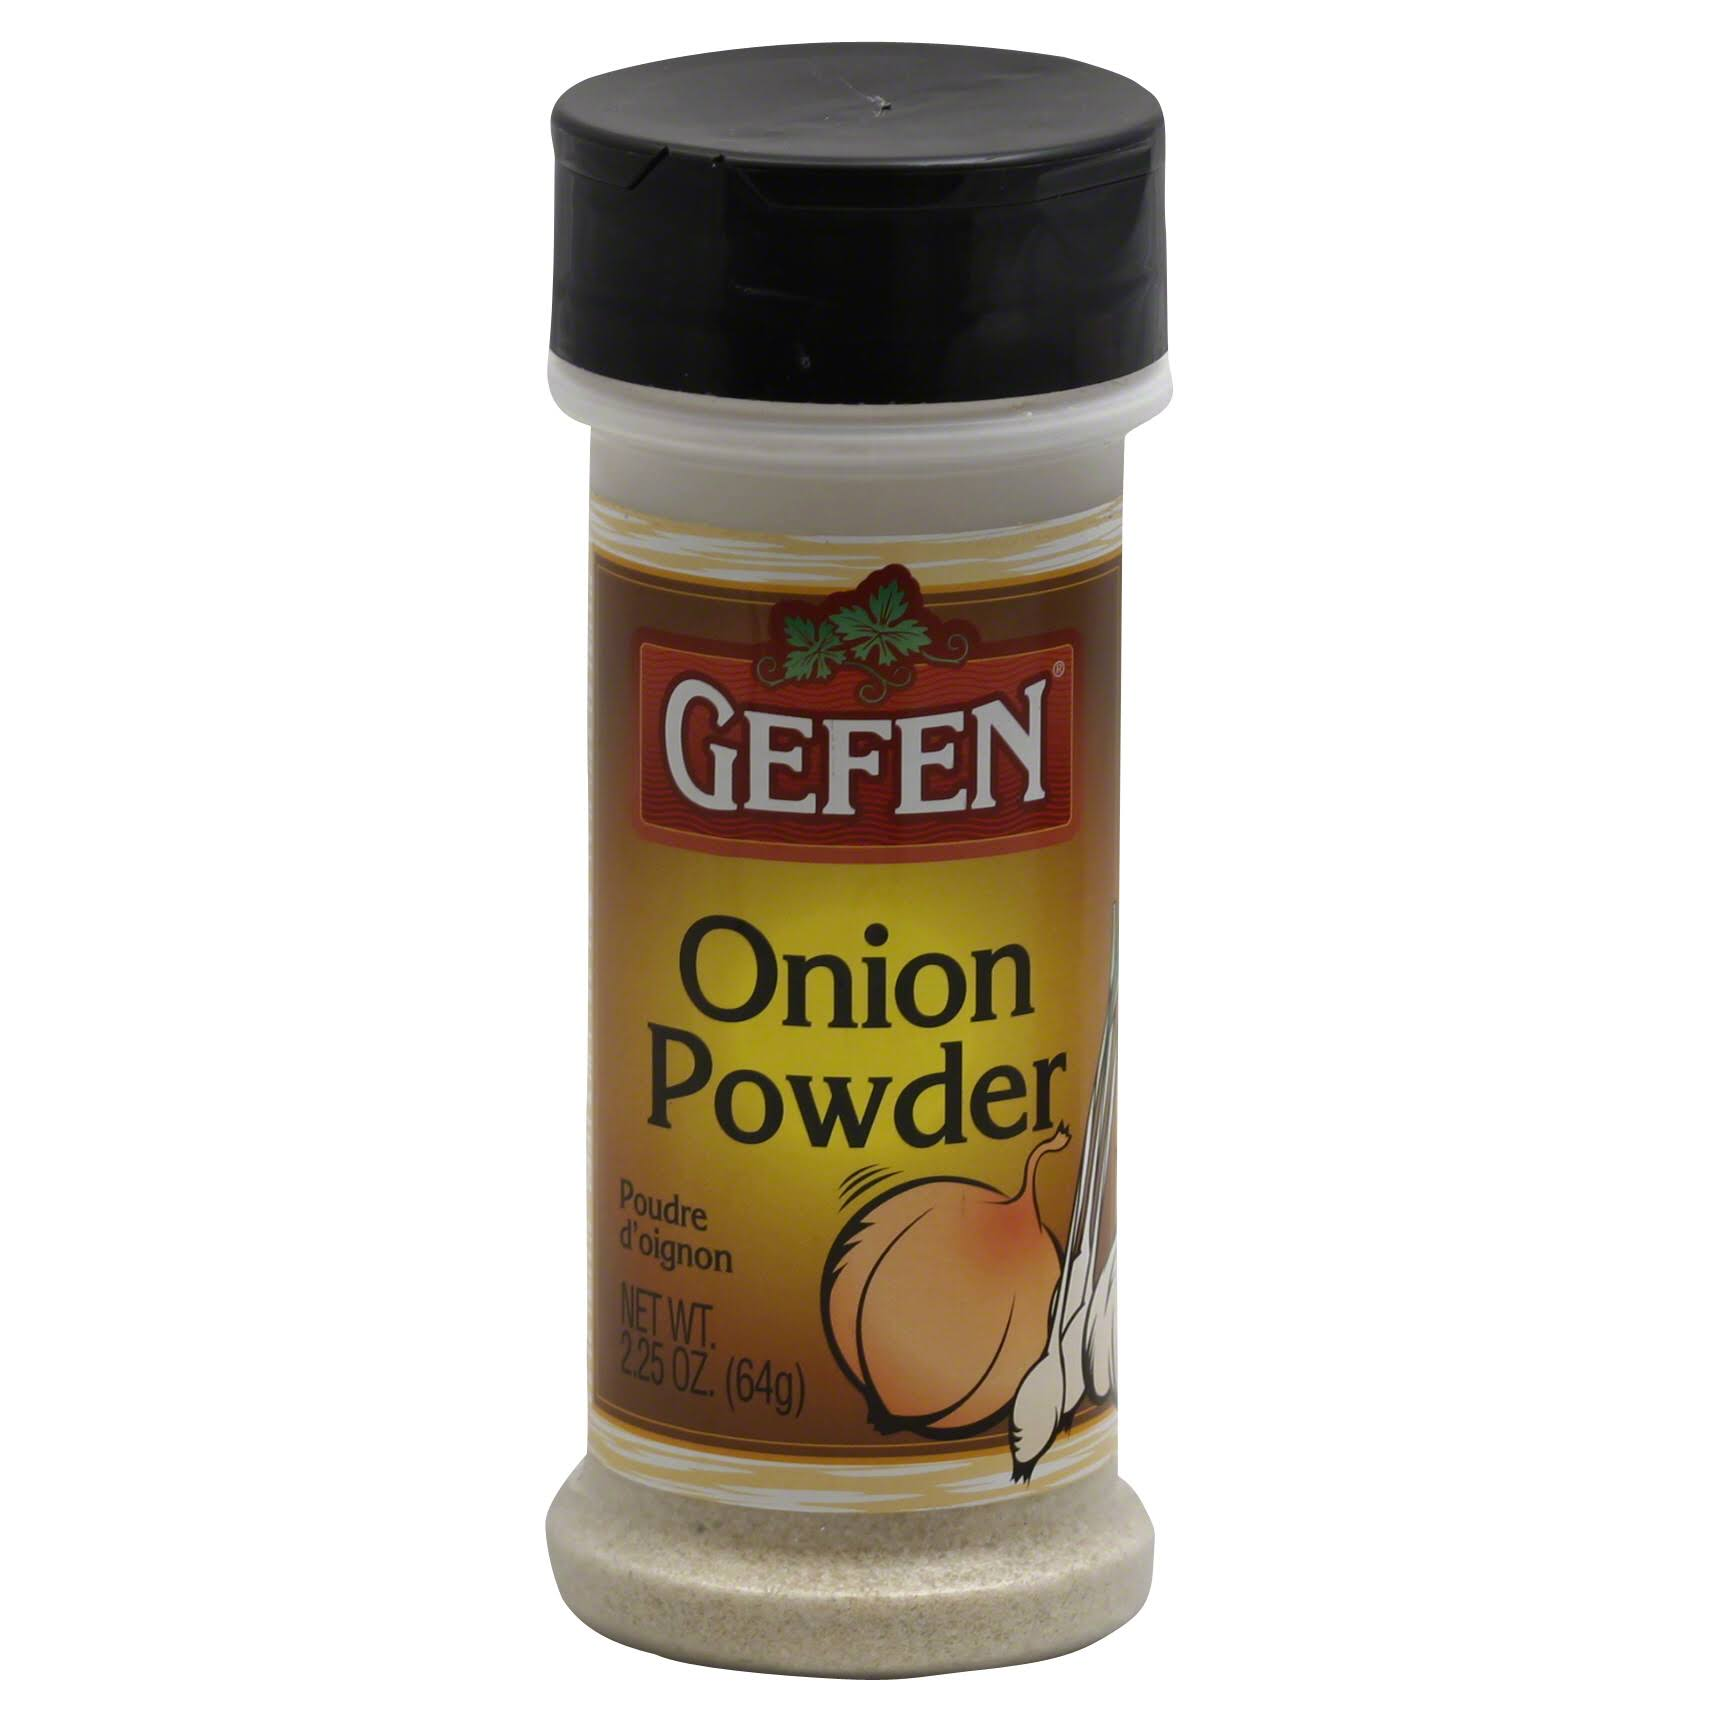 Gefen Onion Powder - 2.25oz